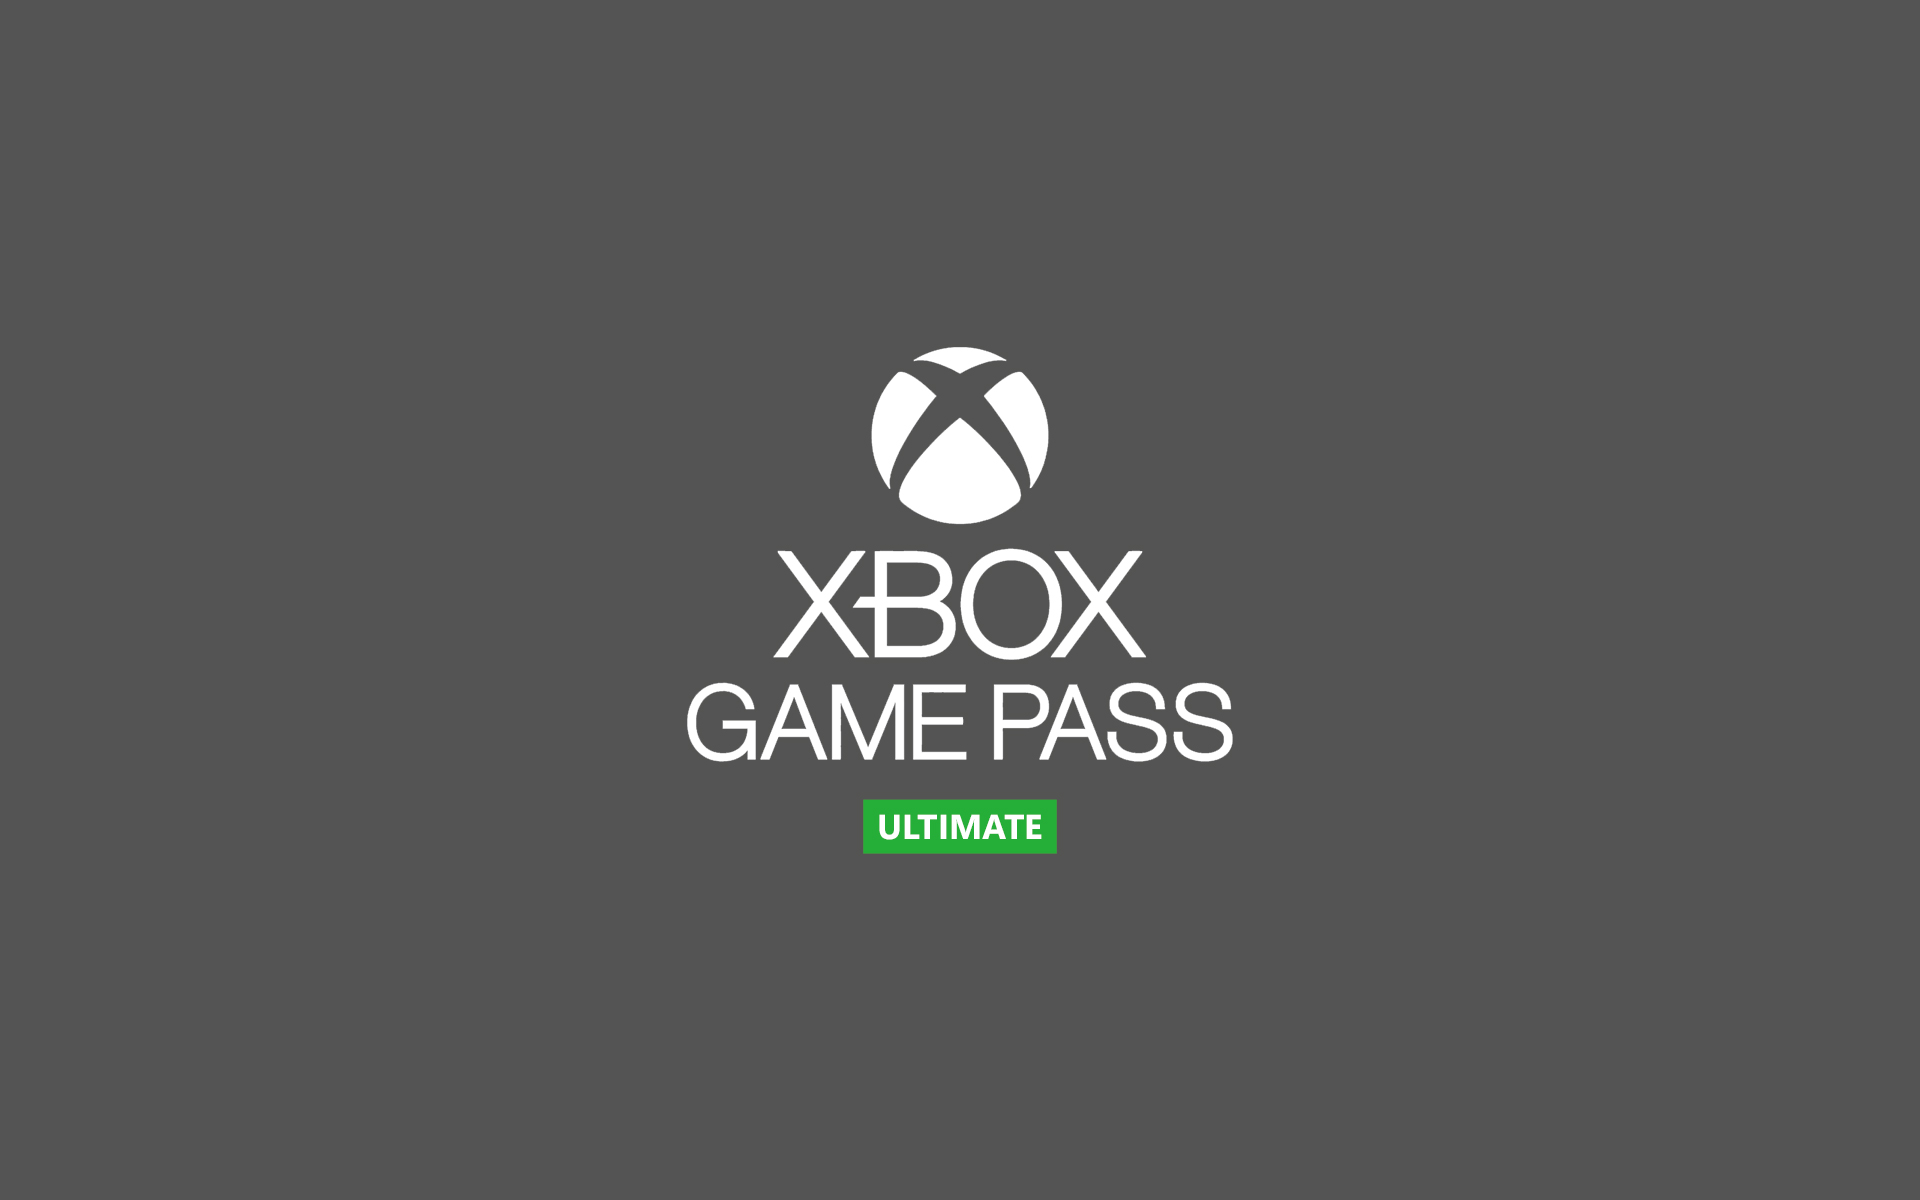 3 Meses - Xbox Game Pass Ultimate  cover